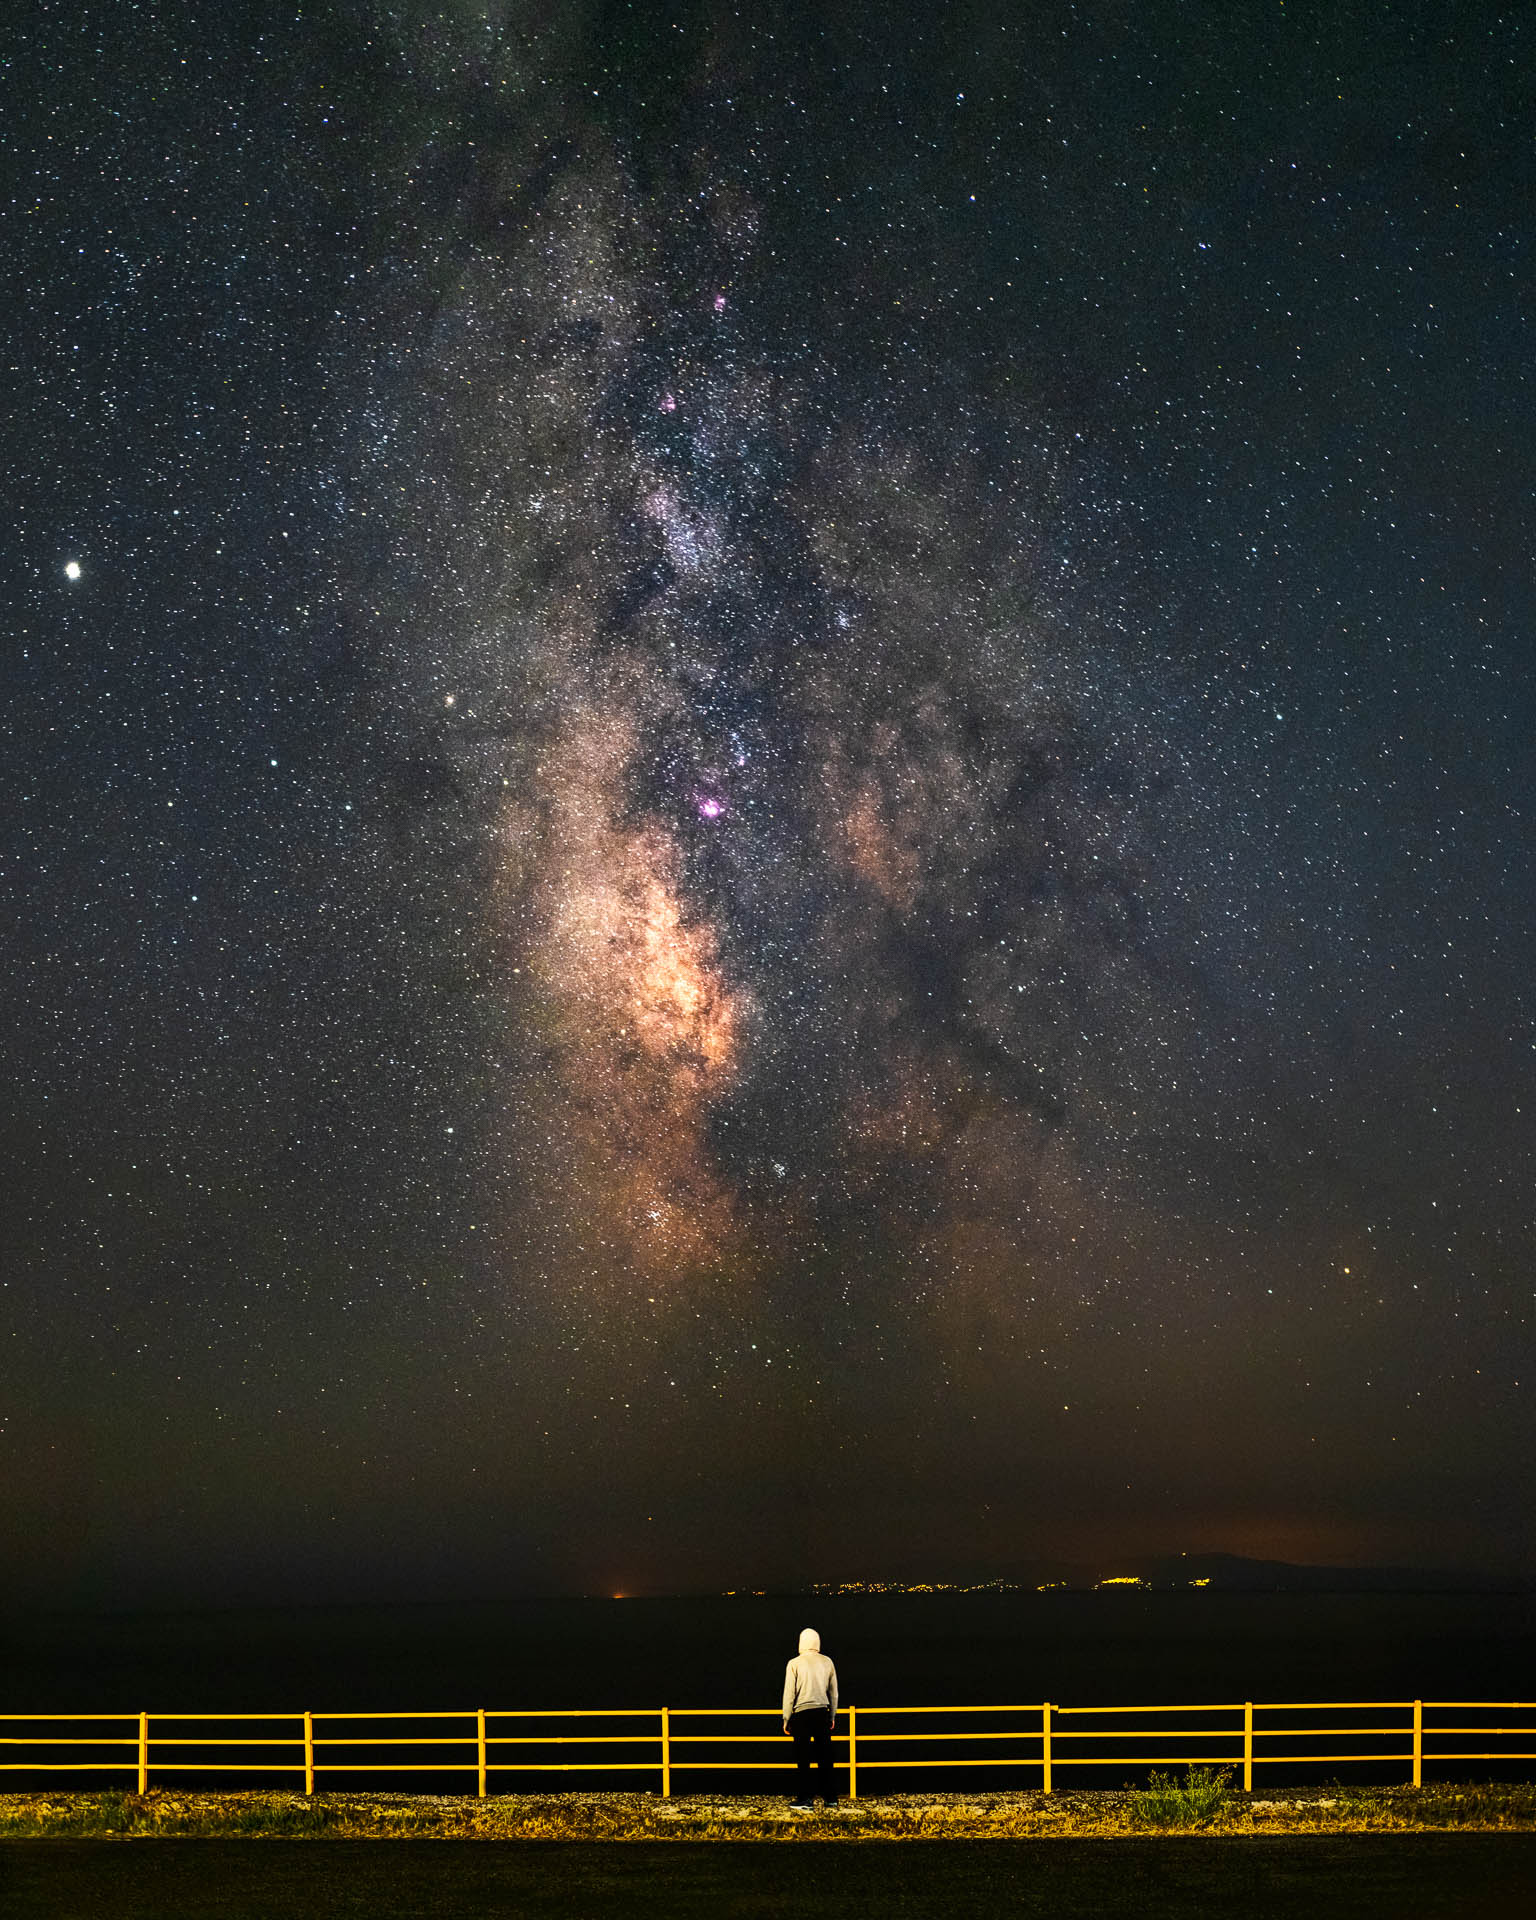 Stargazing the milky way in a starry night